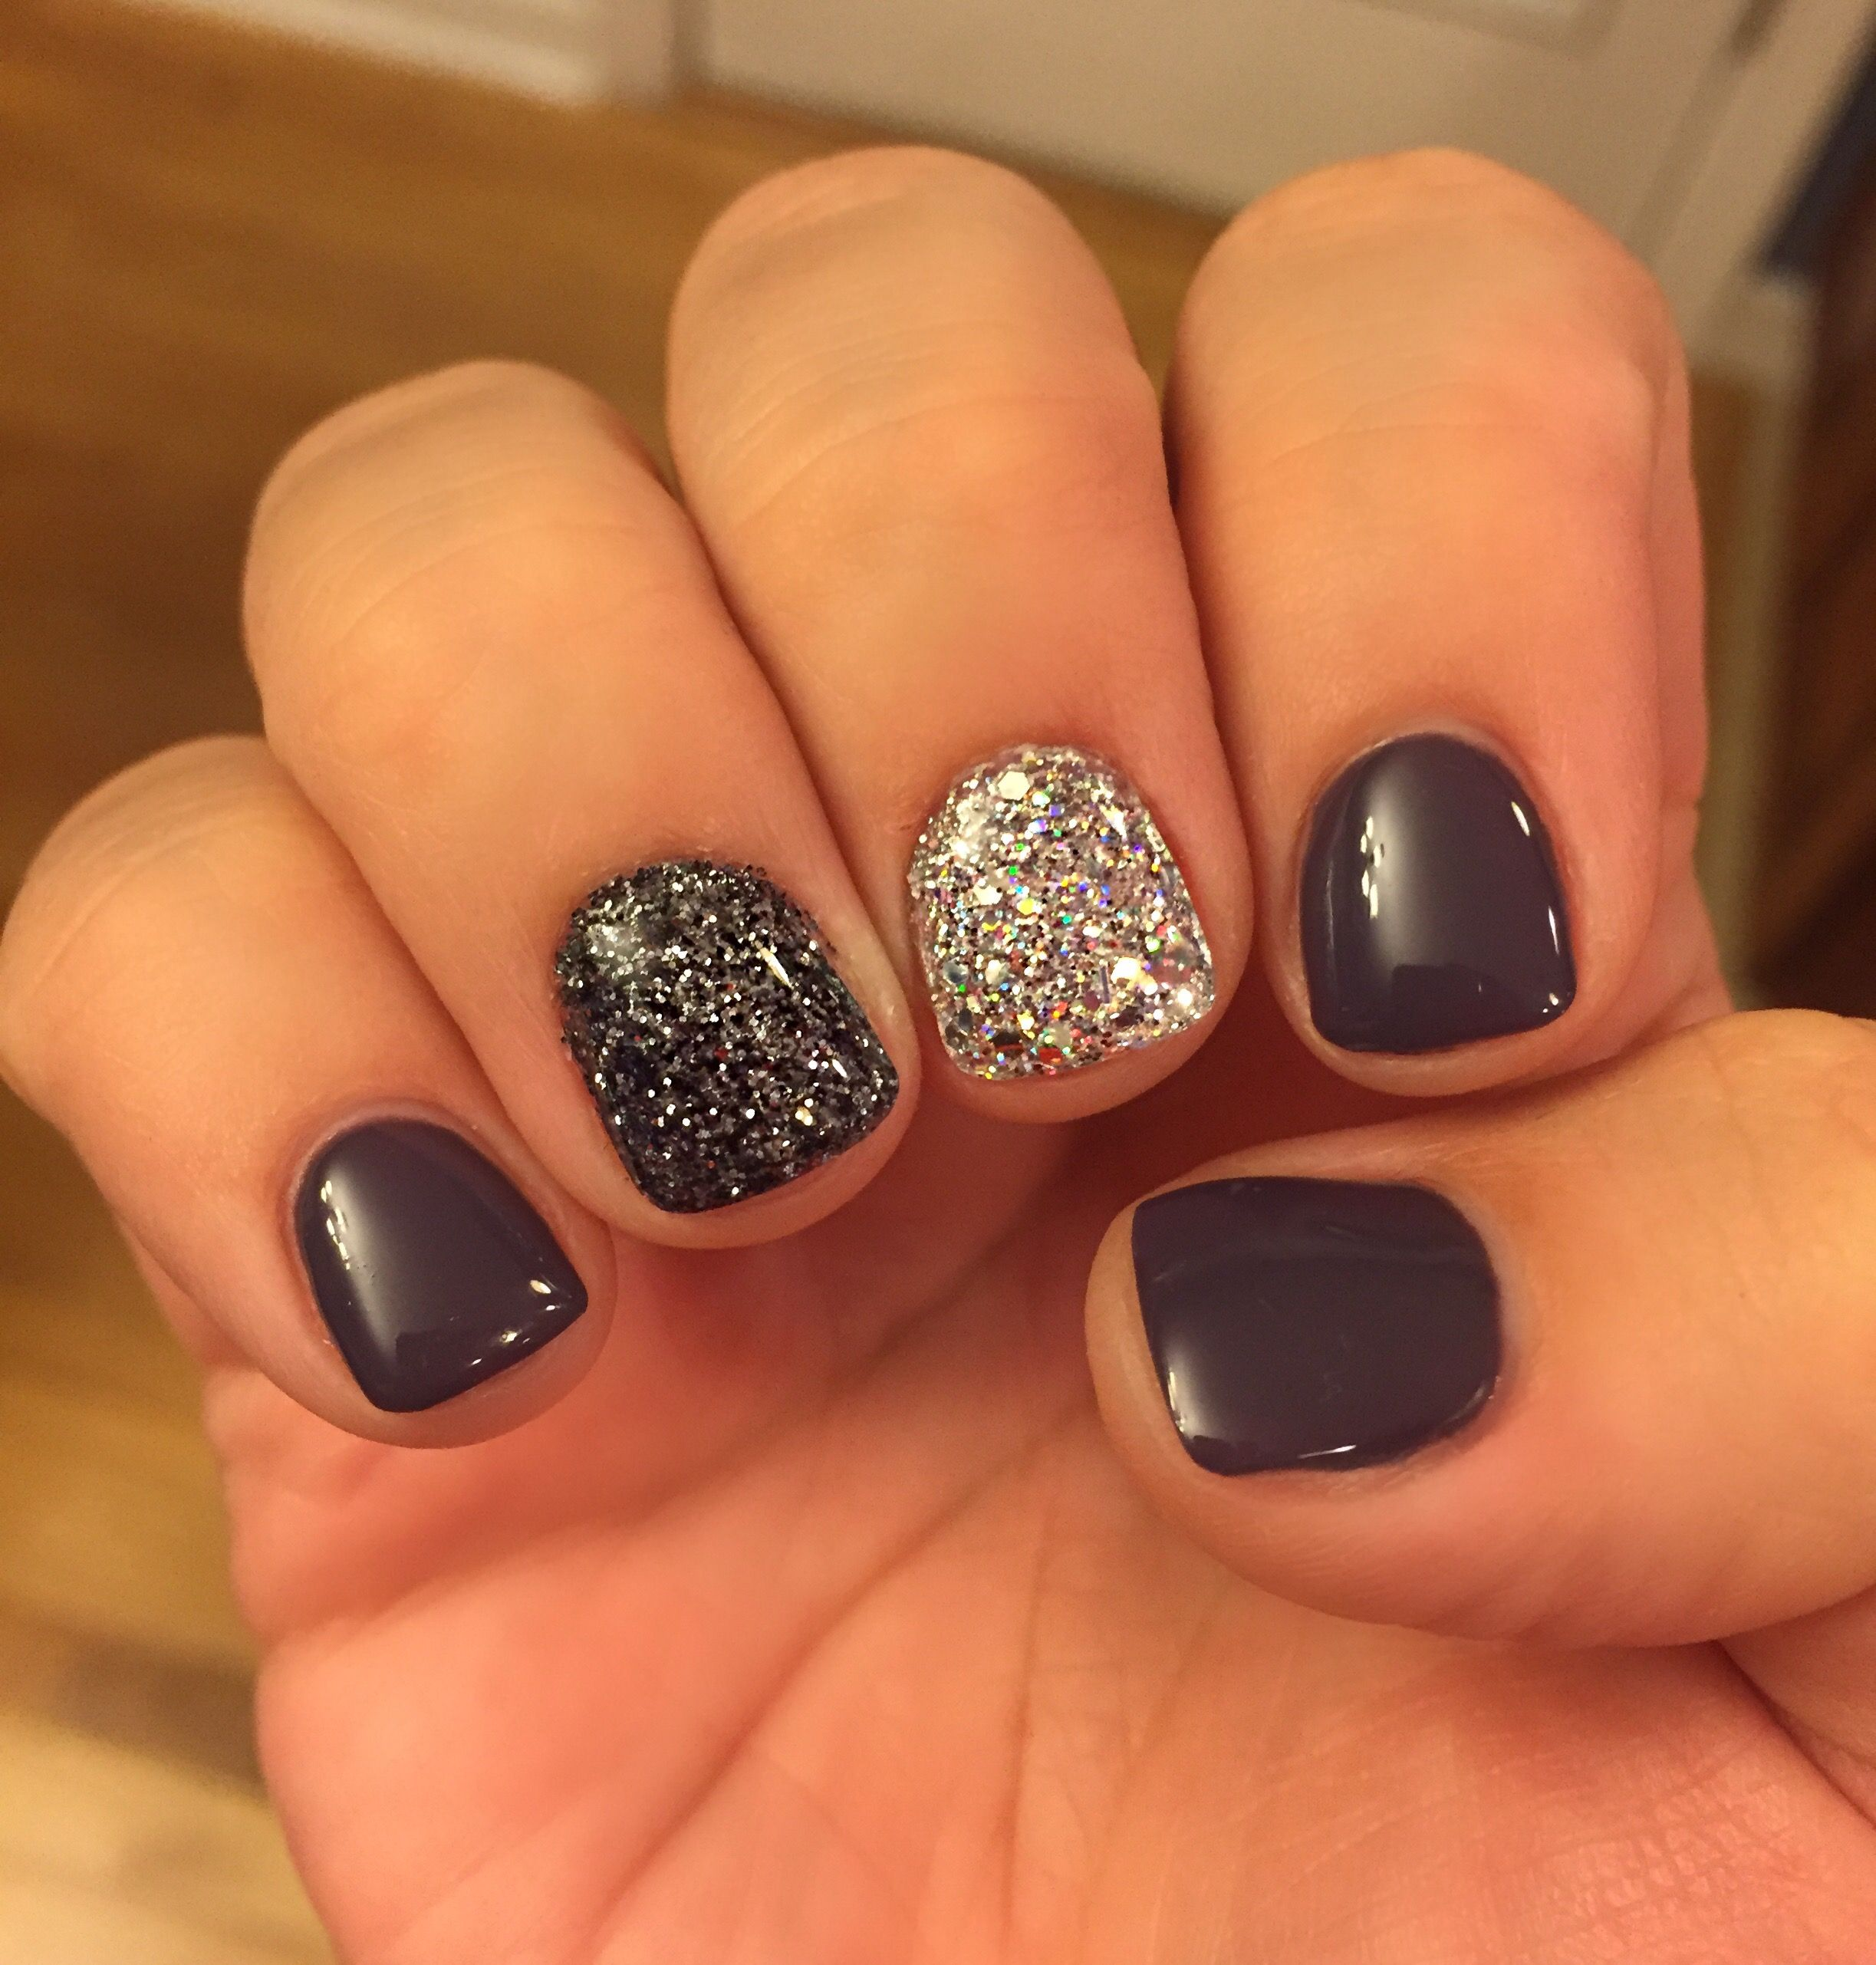 Grey gel glitter accent nail art https://www.facebook.com ...